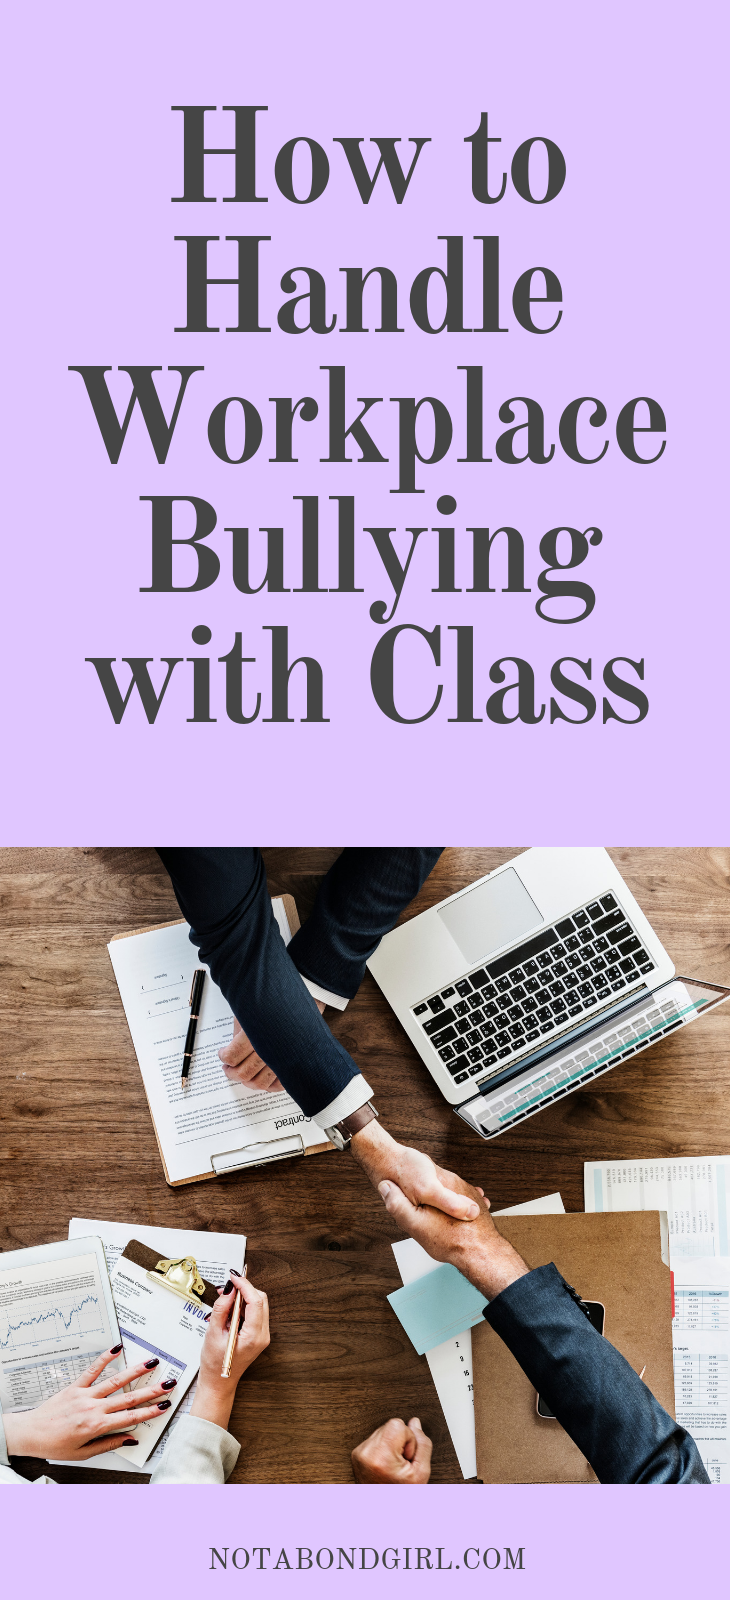 How to Handle Workplace Bullying with Class